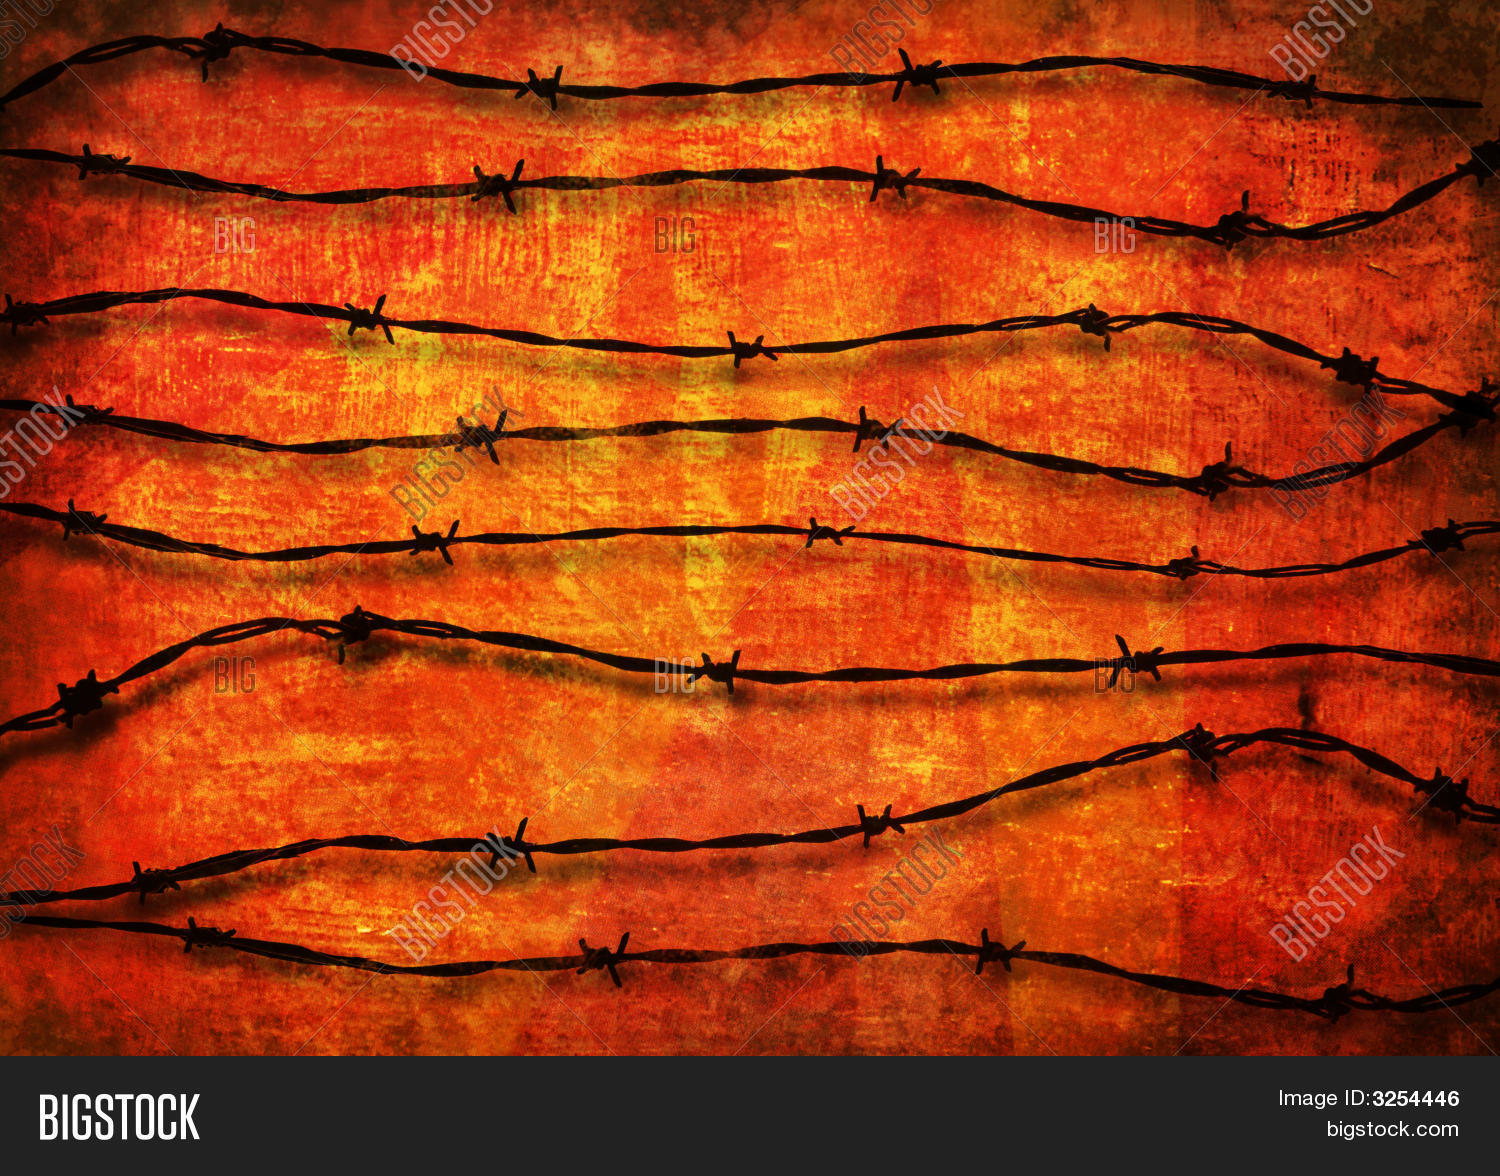 Barbed Wire Background Over Red Image & Photo | Bigstock